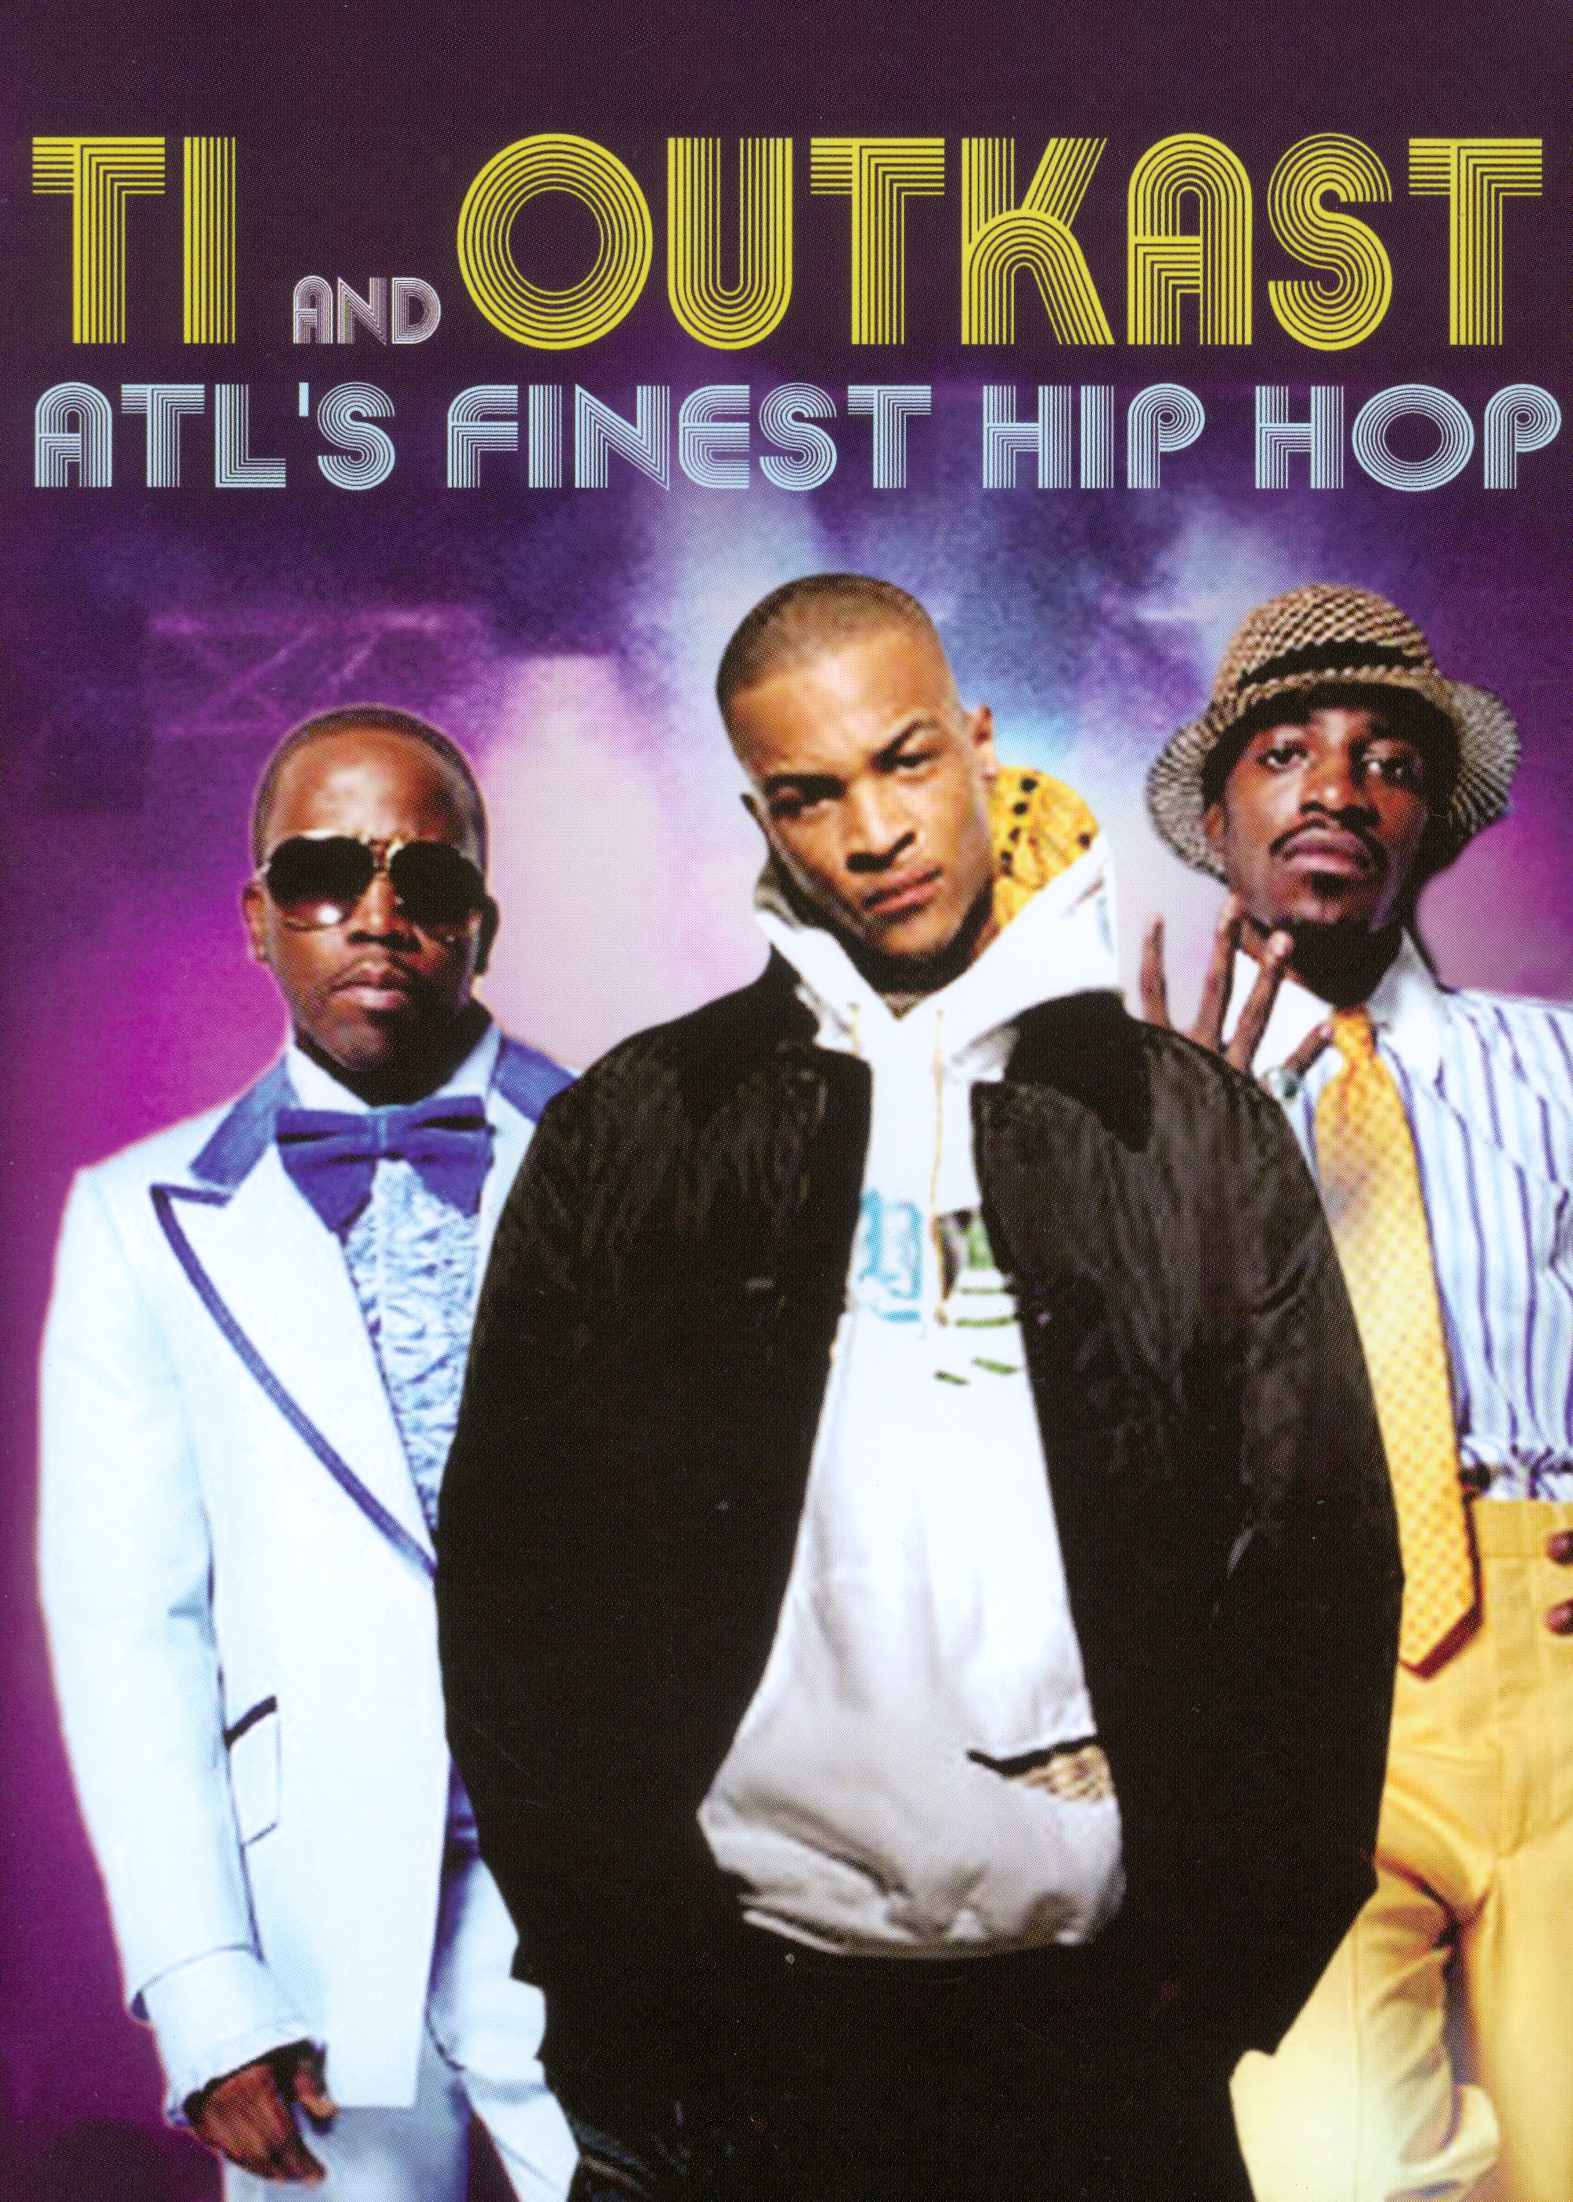 T.I. and Outkast: Atl's Finest Hip Hop